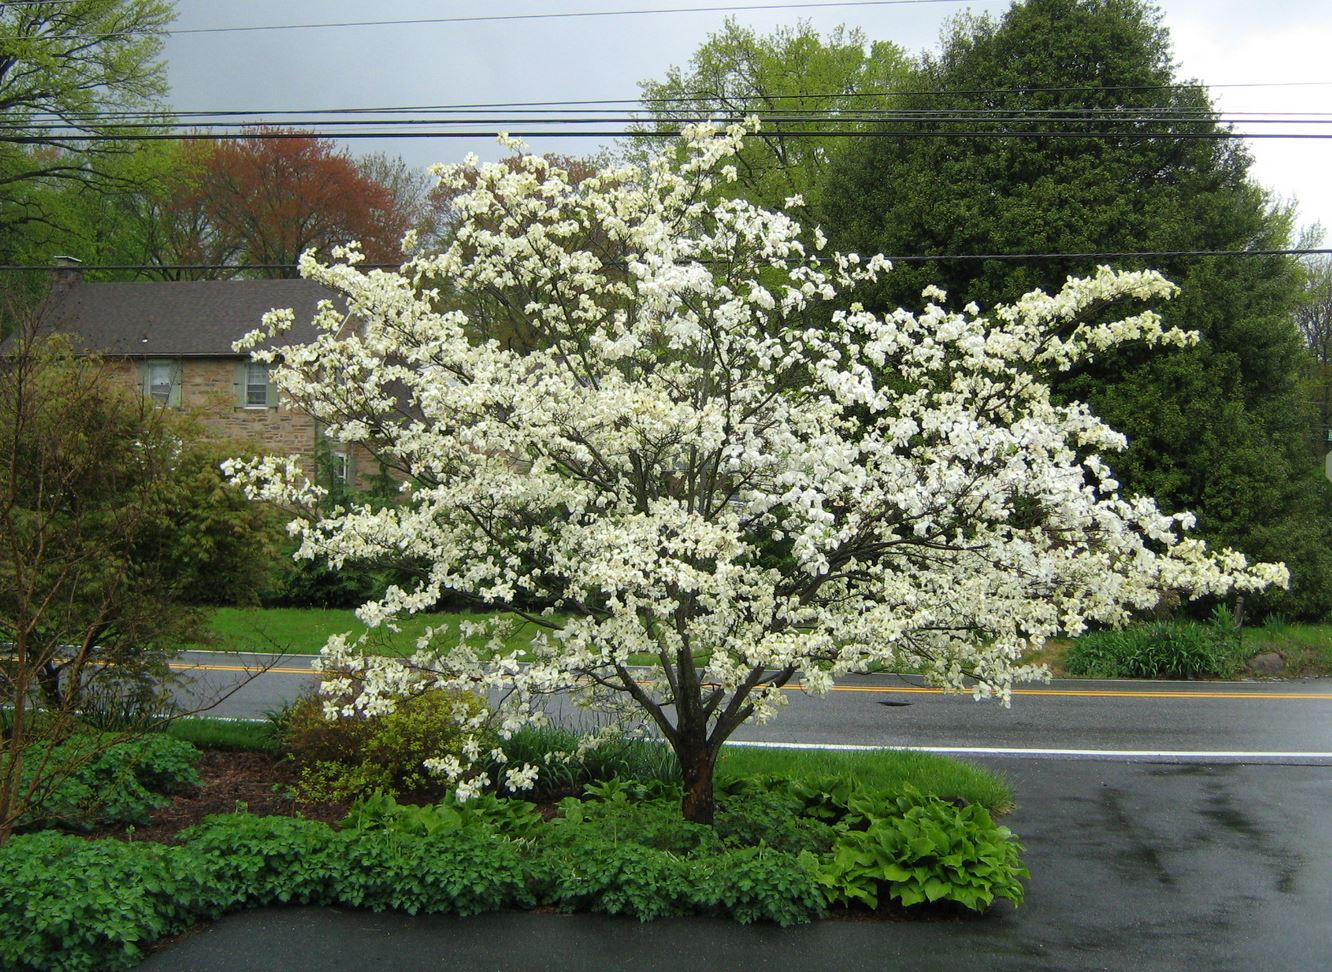 The 10 most beautiful ornamental trees for your yard the homesource serviceberrys brilliant white flower adds an ethereal look to any spring garden clusters of berries attract birds and can be used in pies mightylinksfo